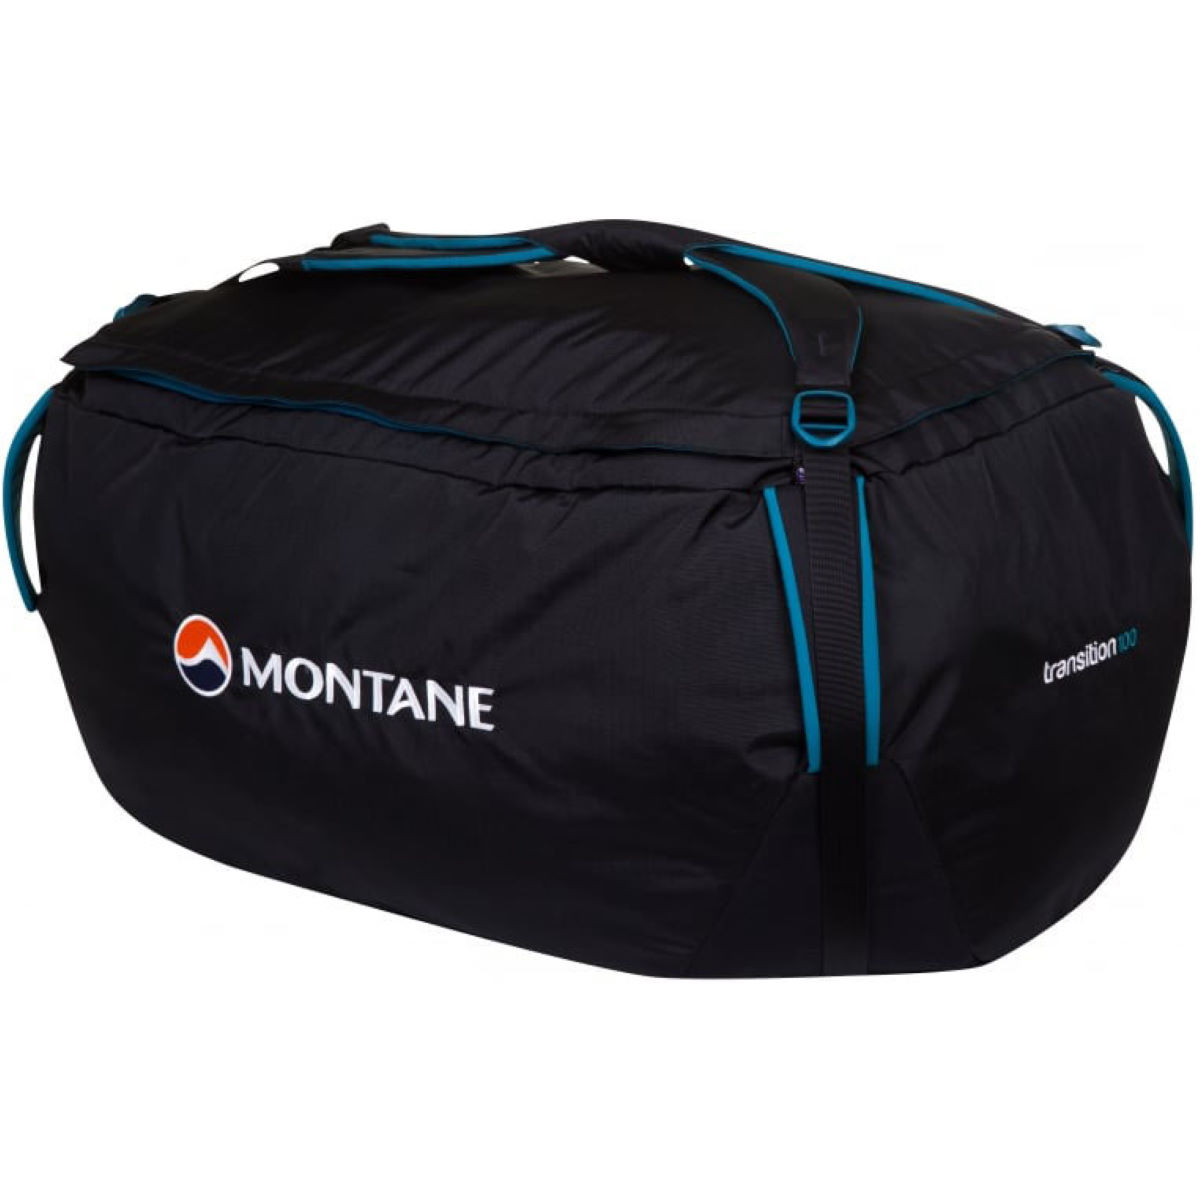 Montane Transition 100 Bag - Mochilas de transición